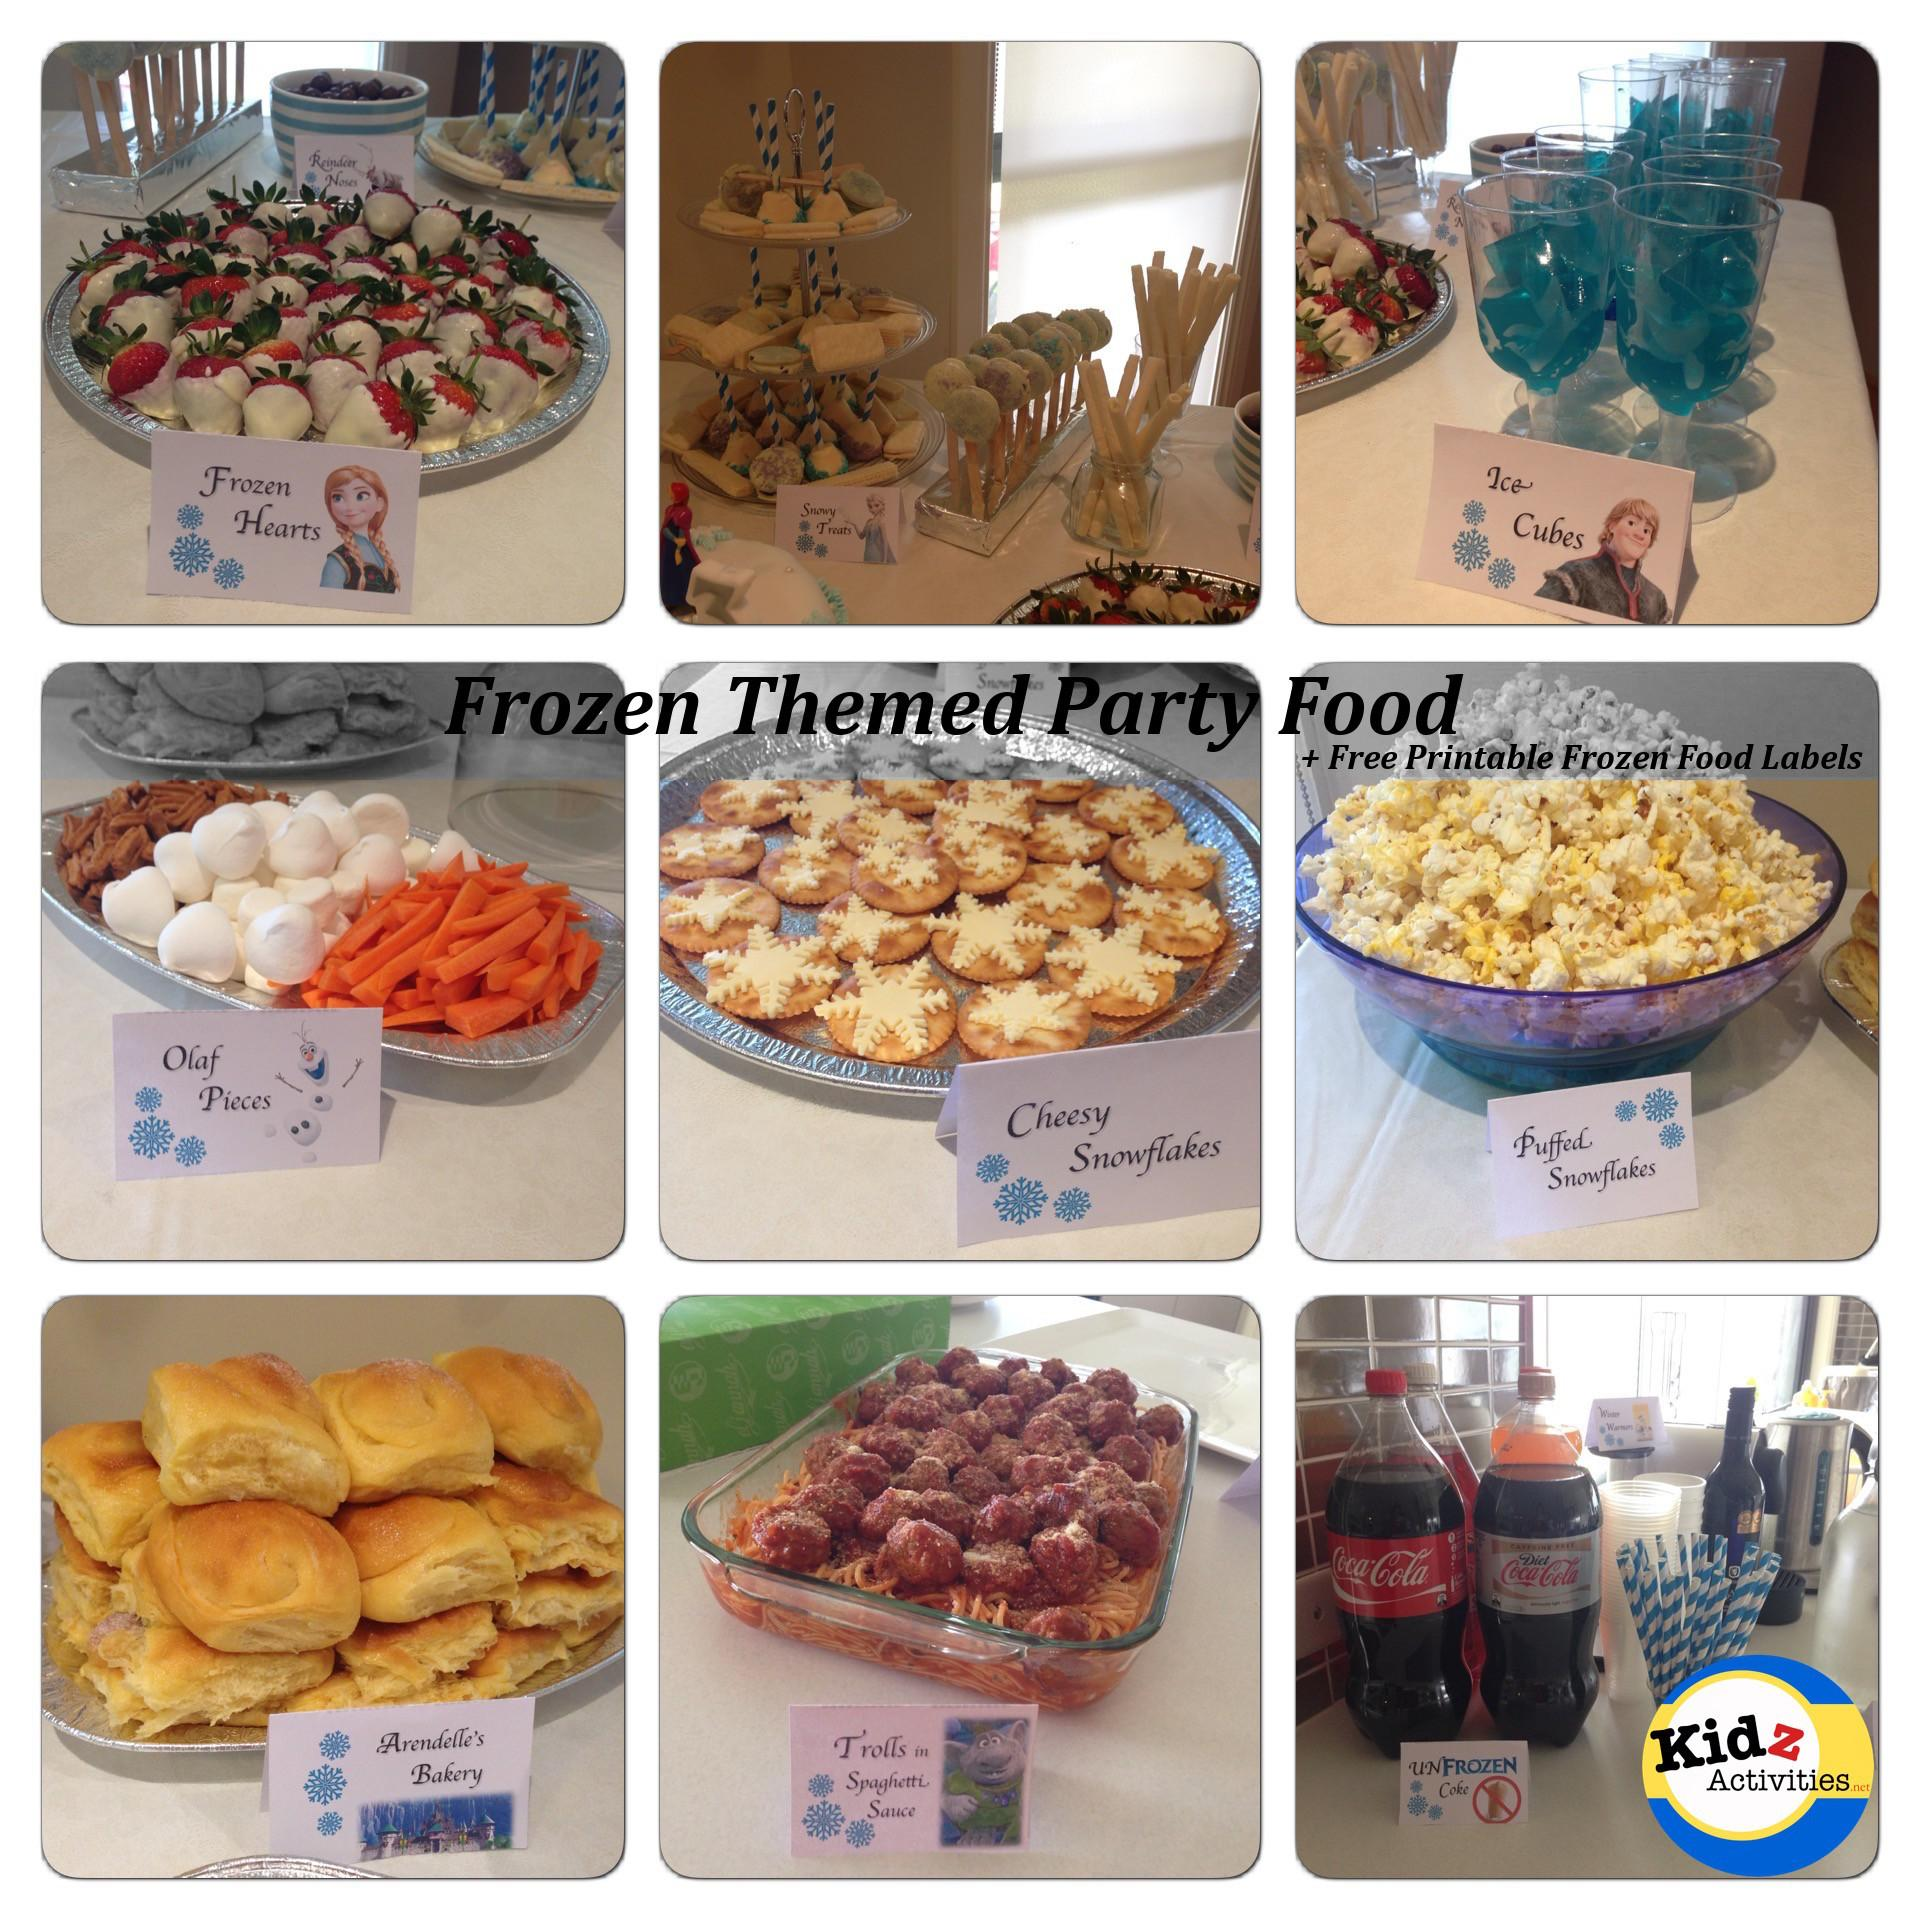 Frozen Themed Party Food Kidz Activities